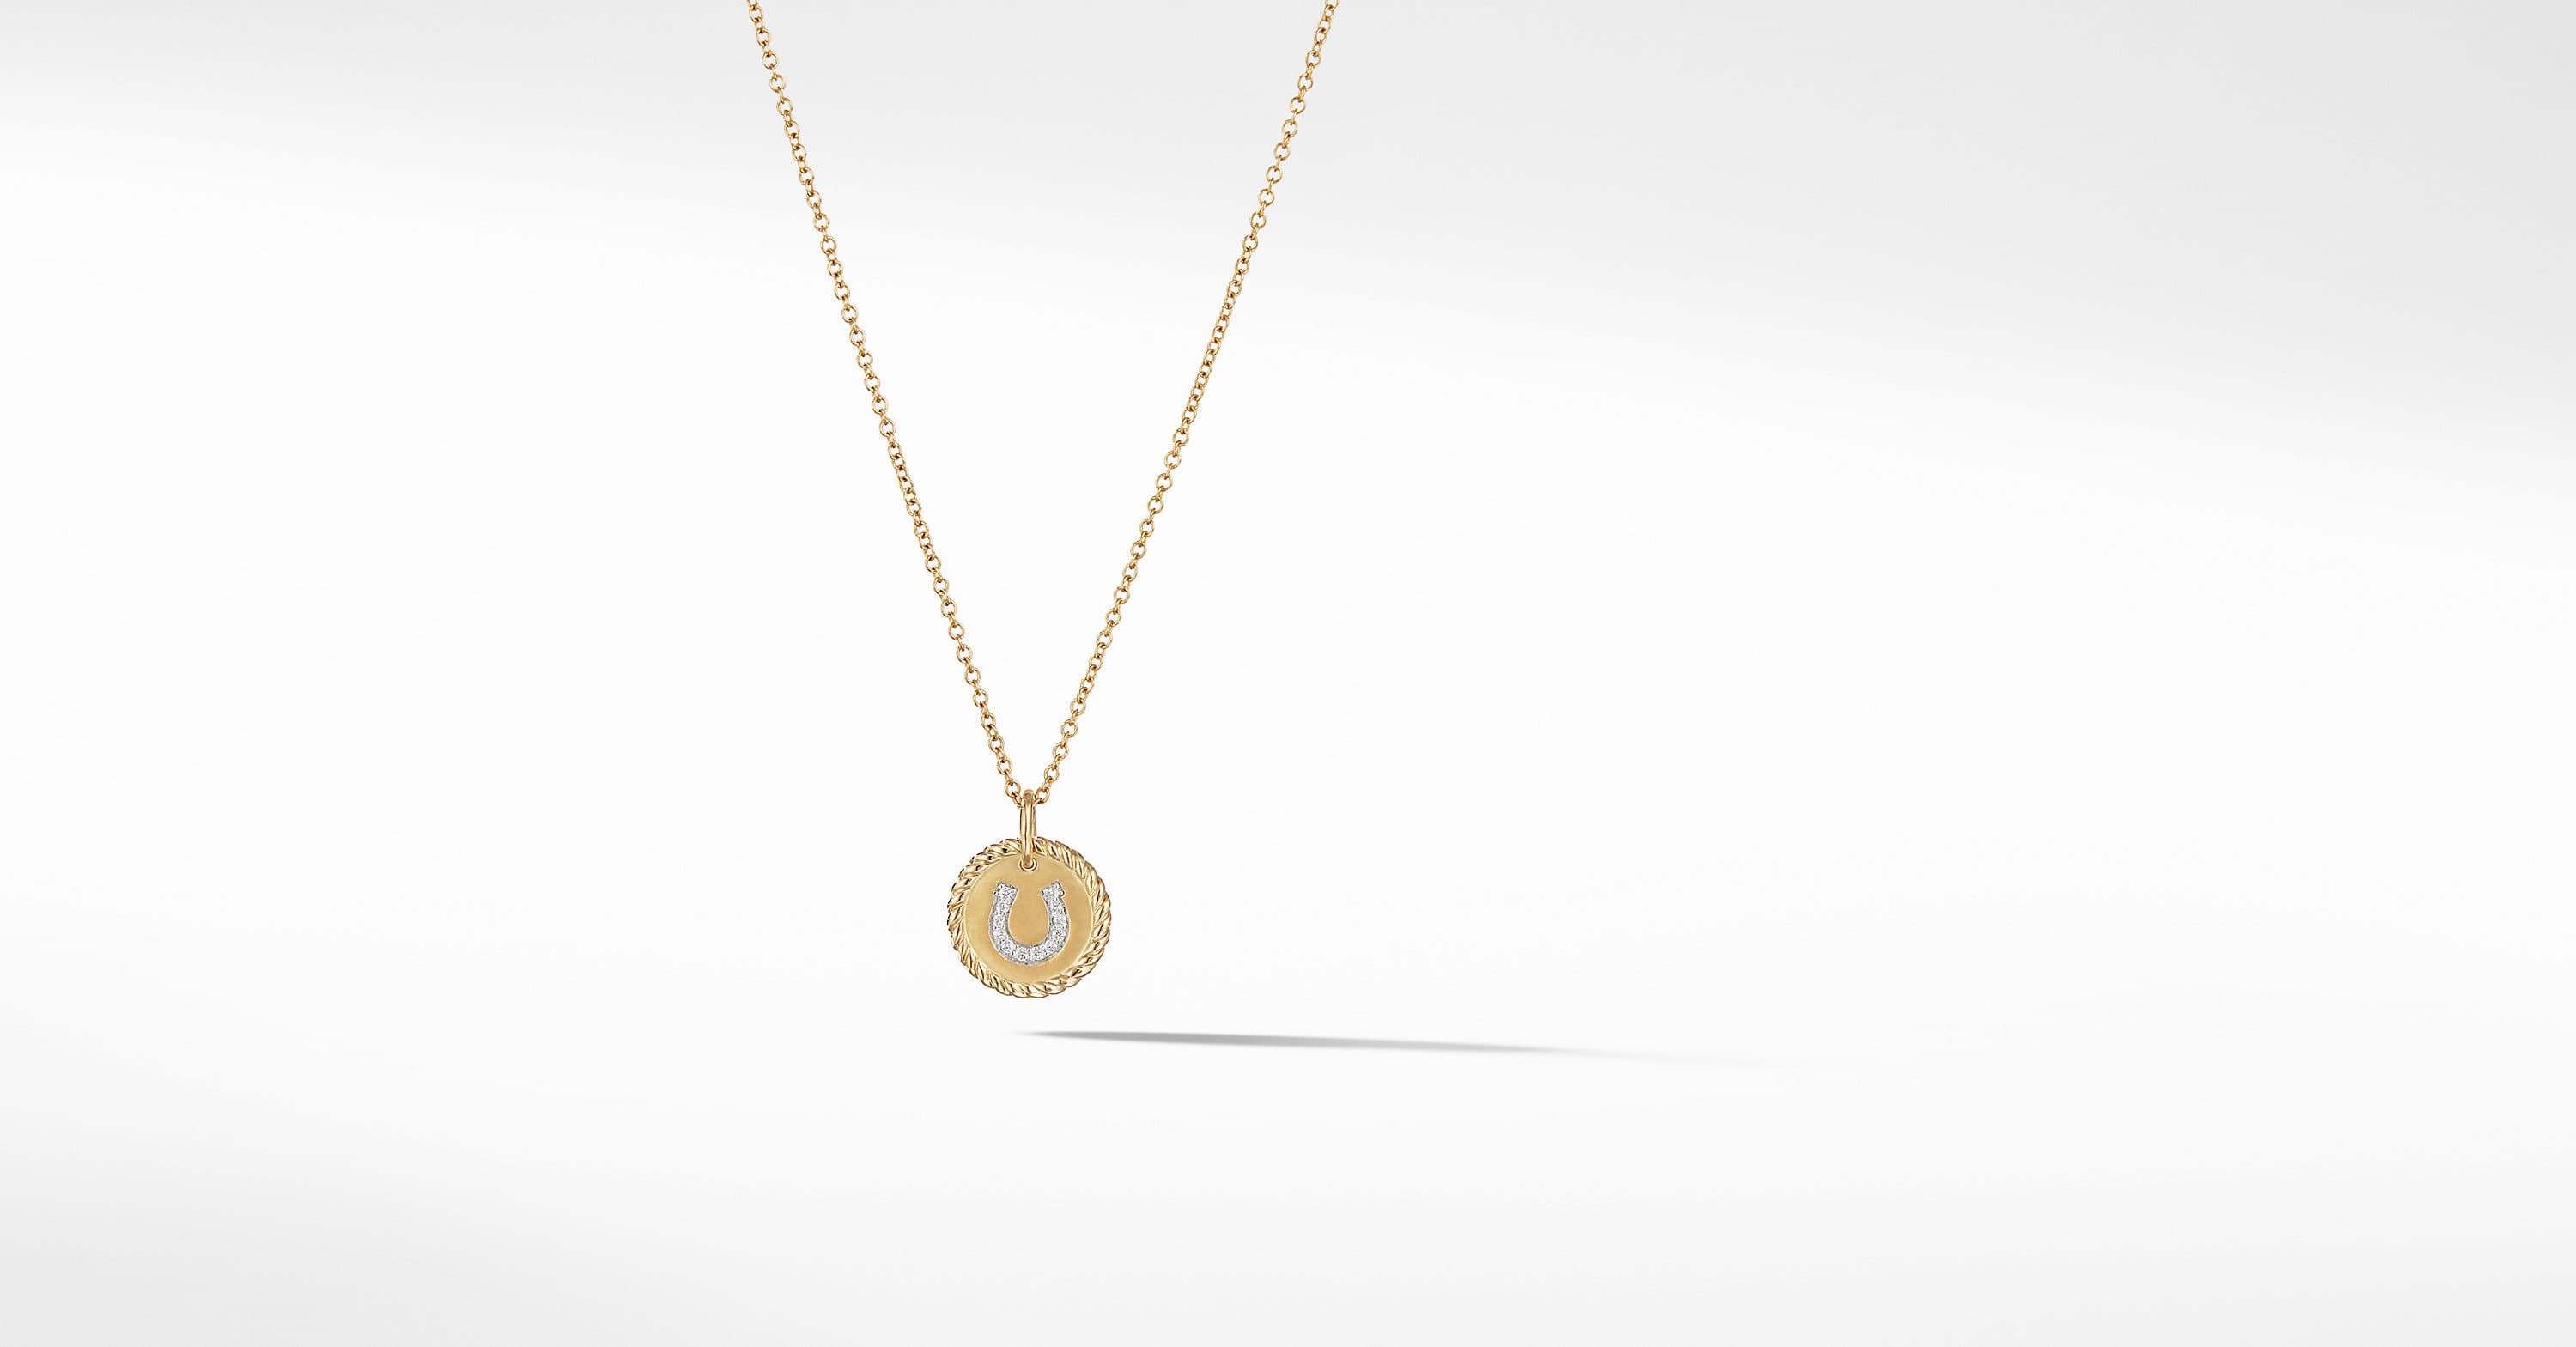 Petite Pave Horseshoe Necklace with Diamonds in 18K Gold